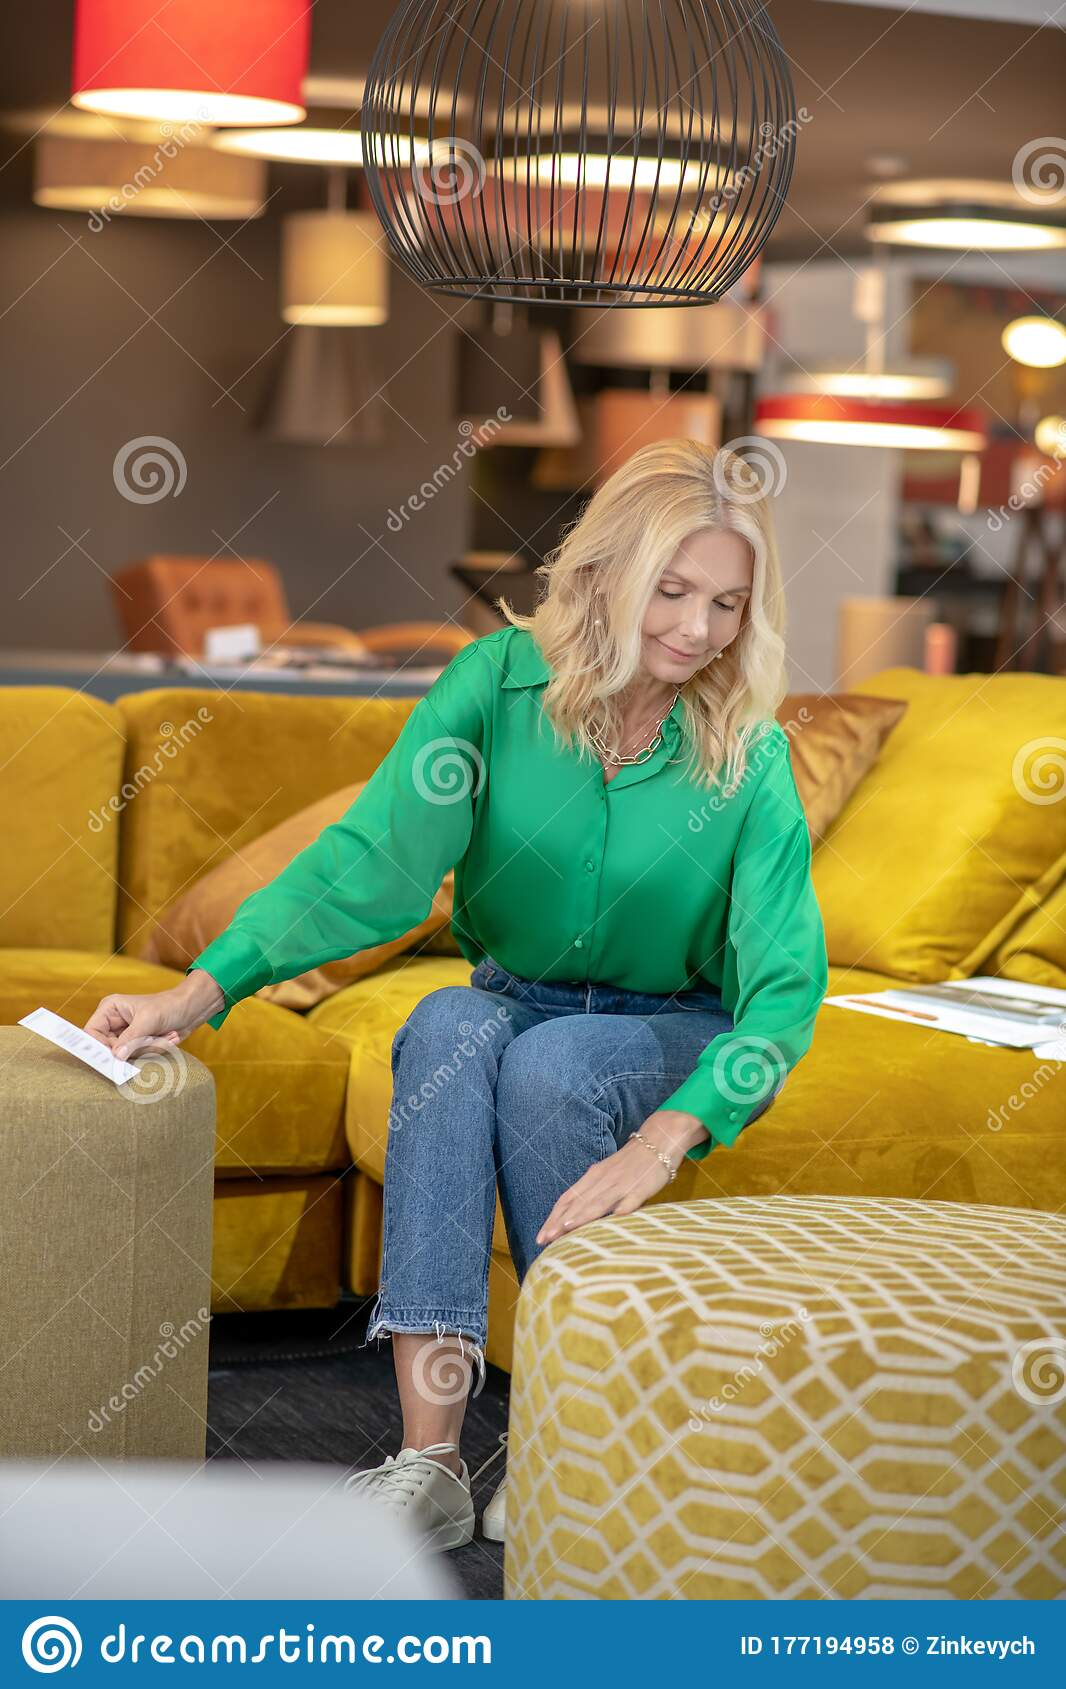 Blonde Woman In A Green Blouse And Jeans Sitting On A Yellow Sofa Stock Photo Image Of Blonde Involved 177194958